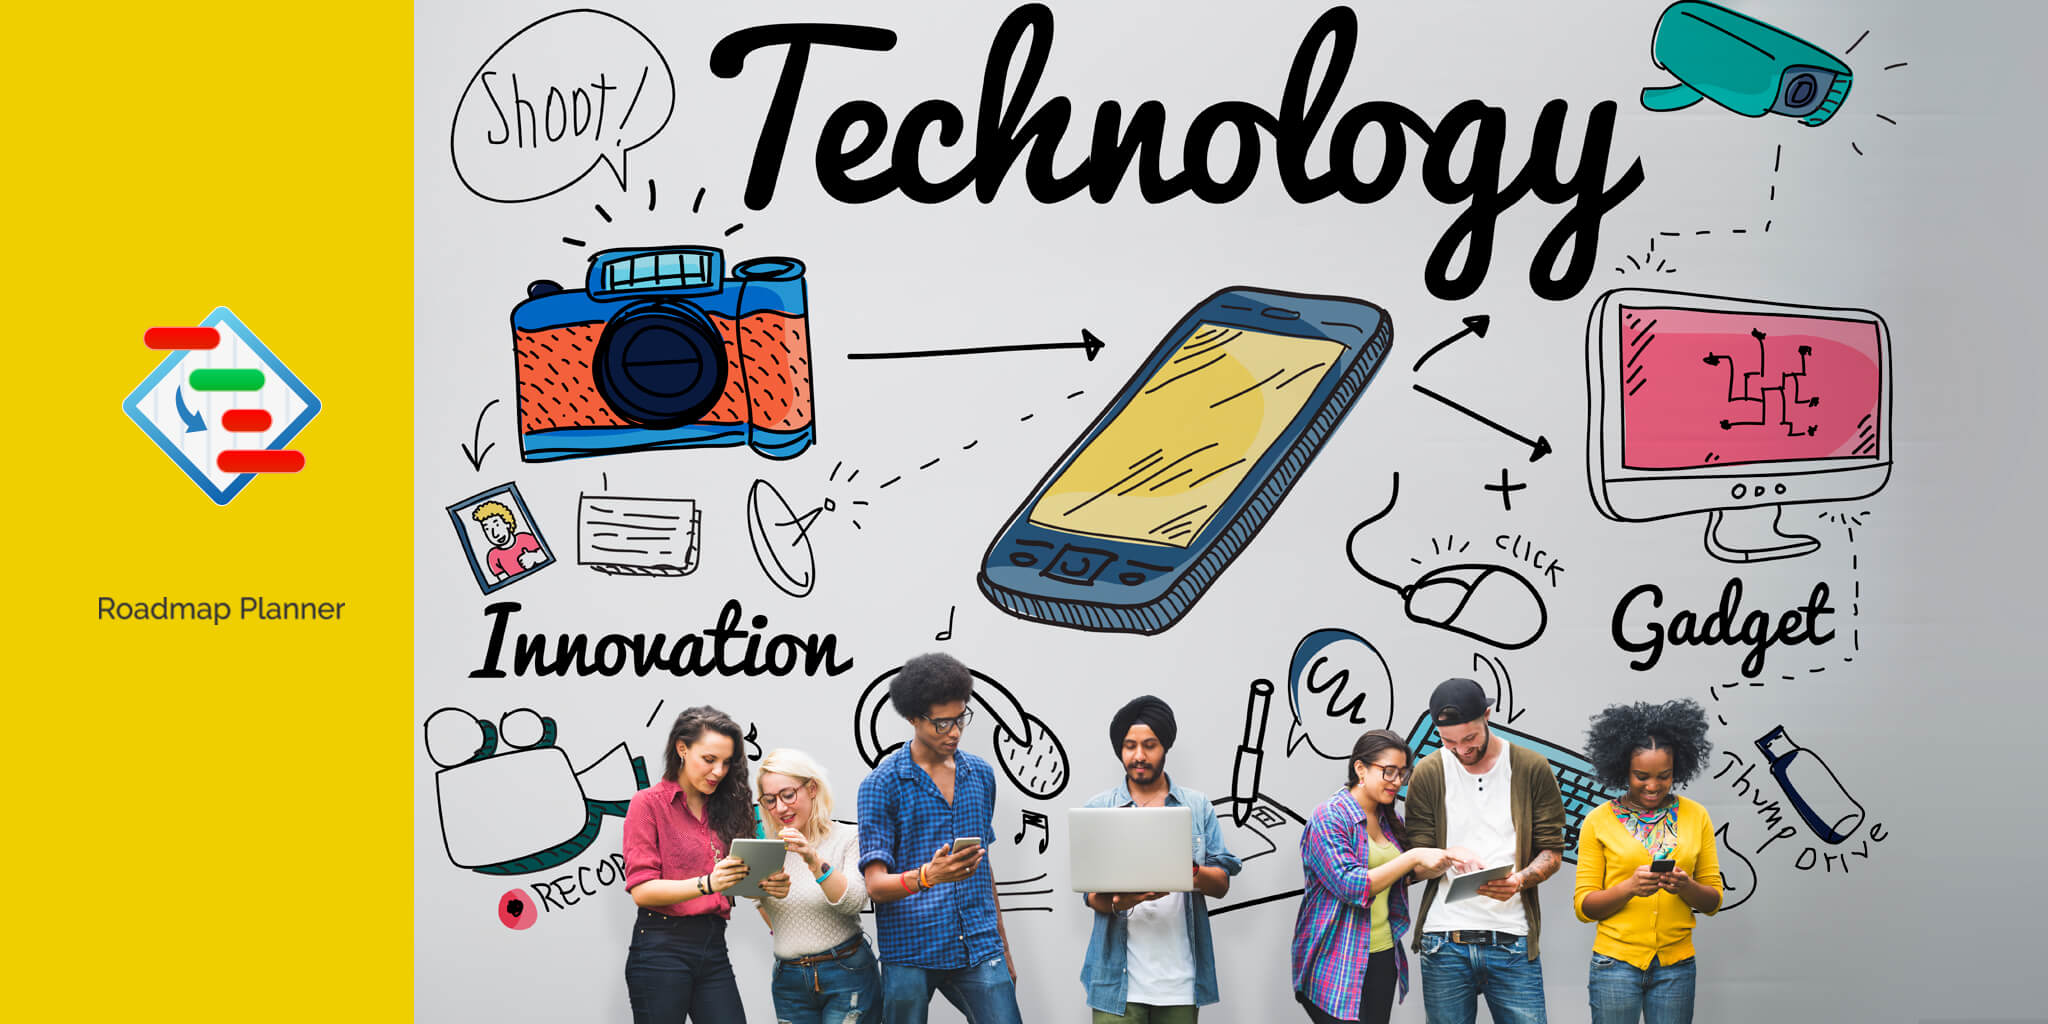 Technology and innovations in teaching and education